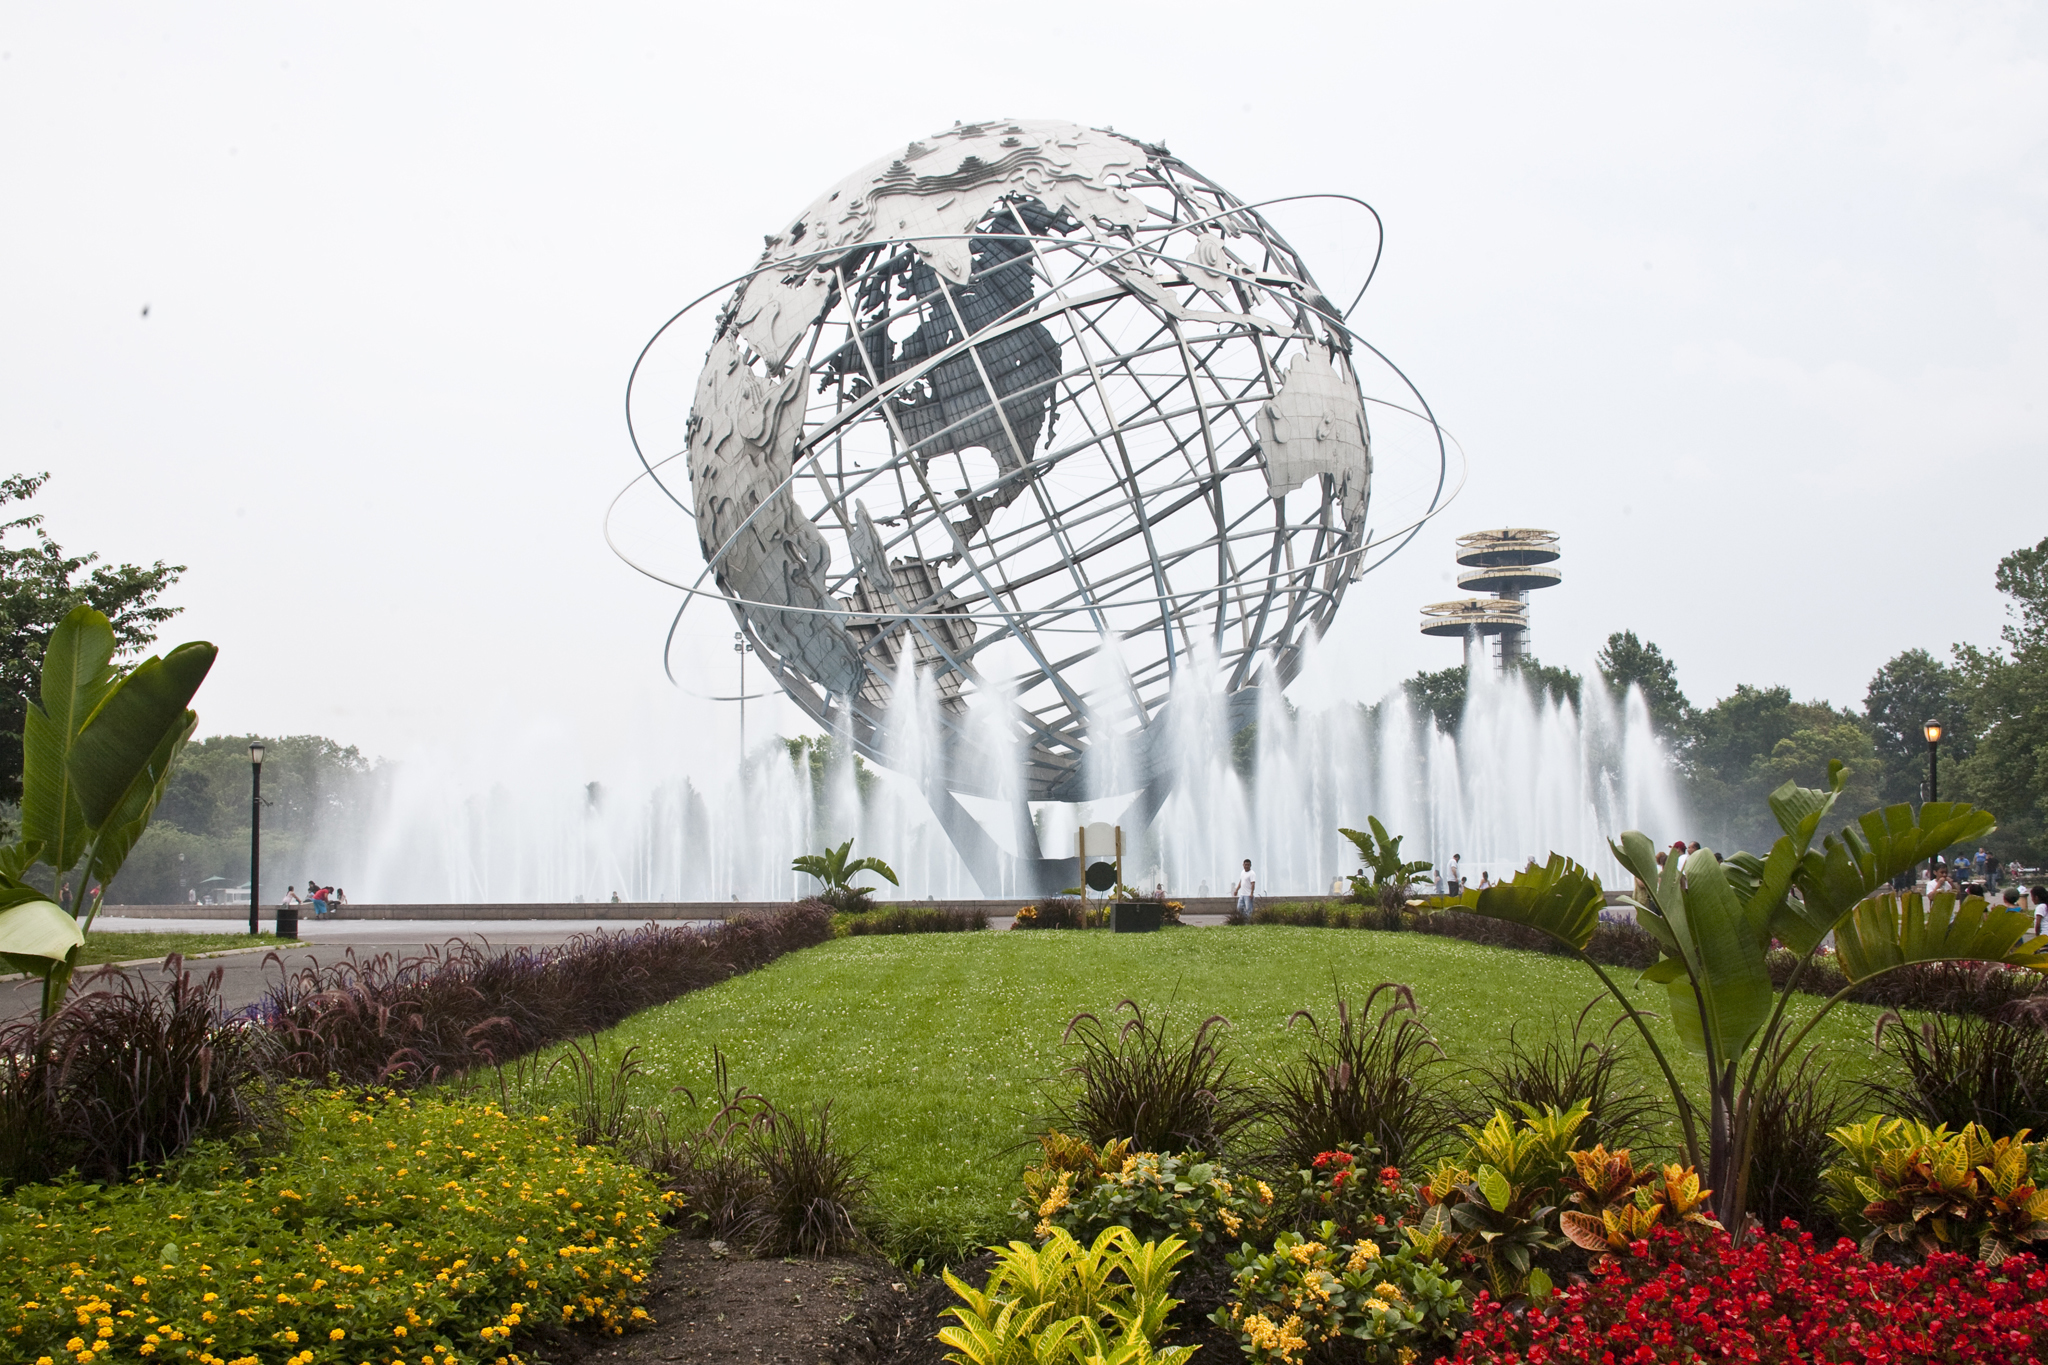 Guide to Flushing Meadows–Corona Park